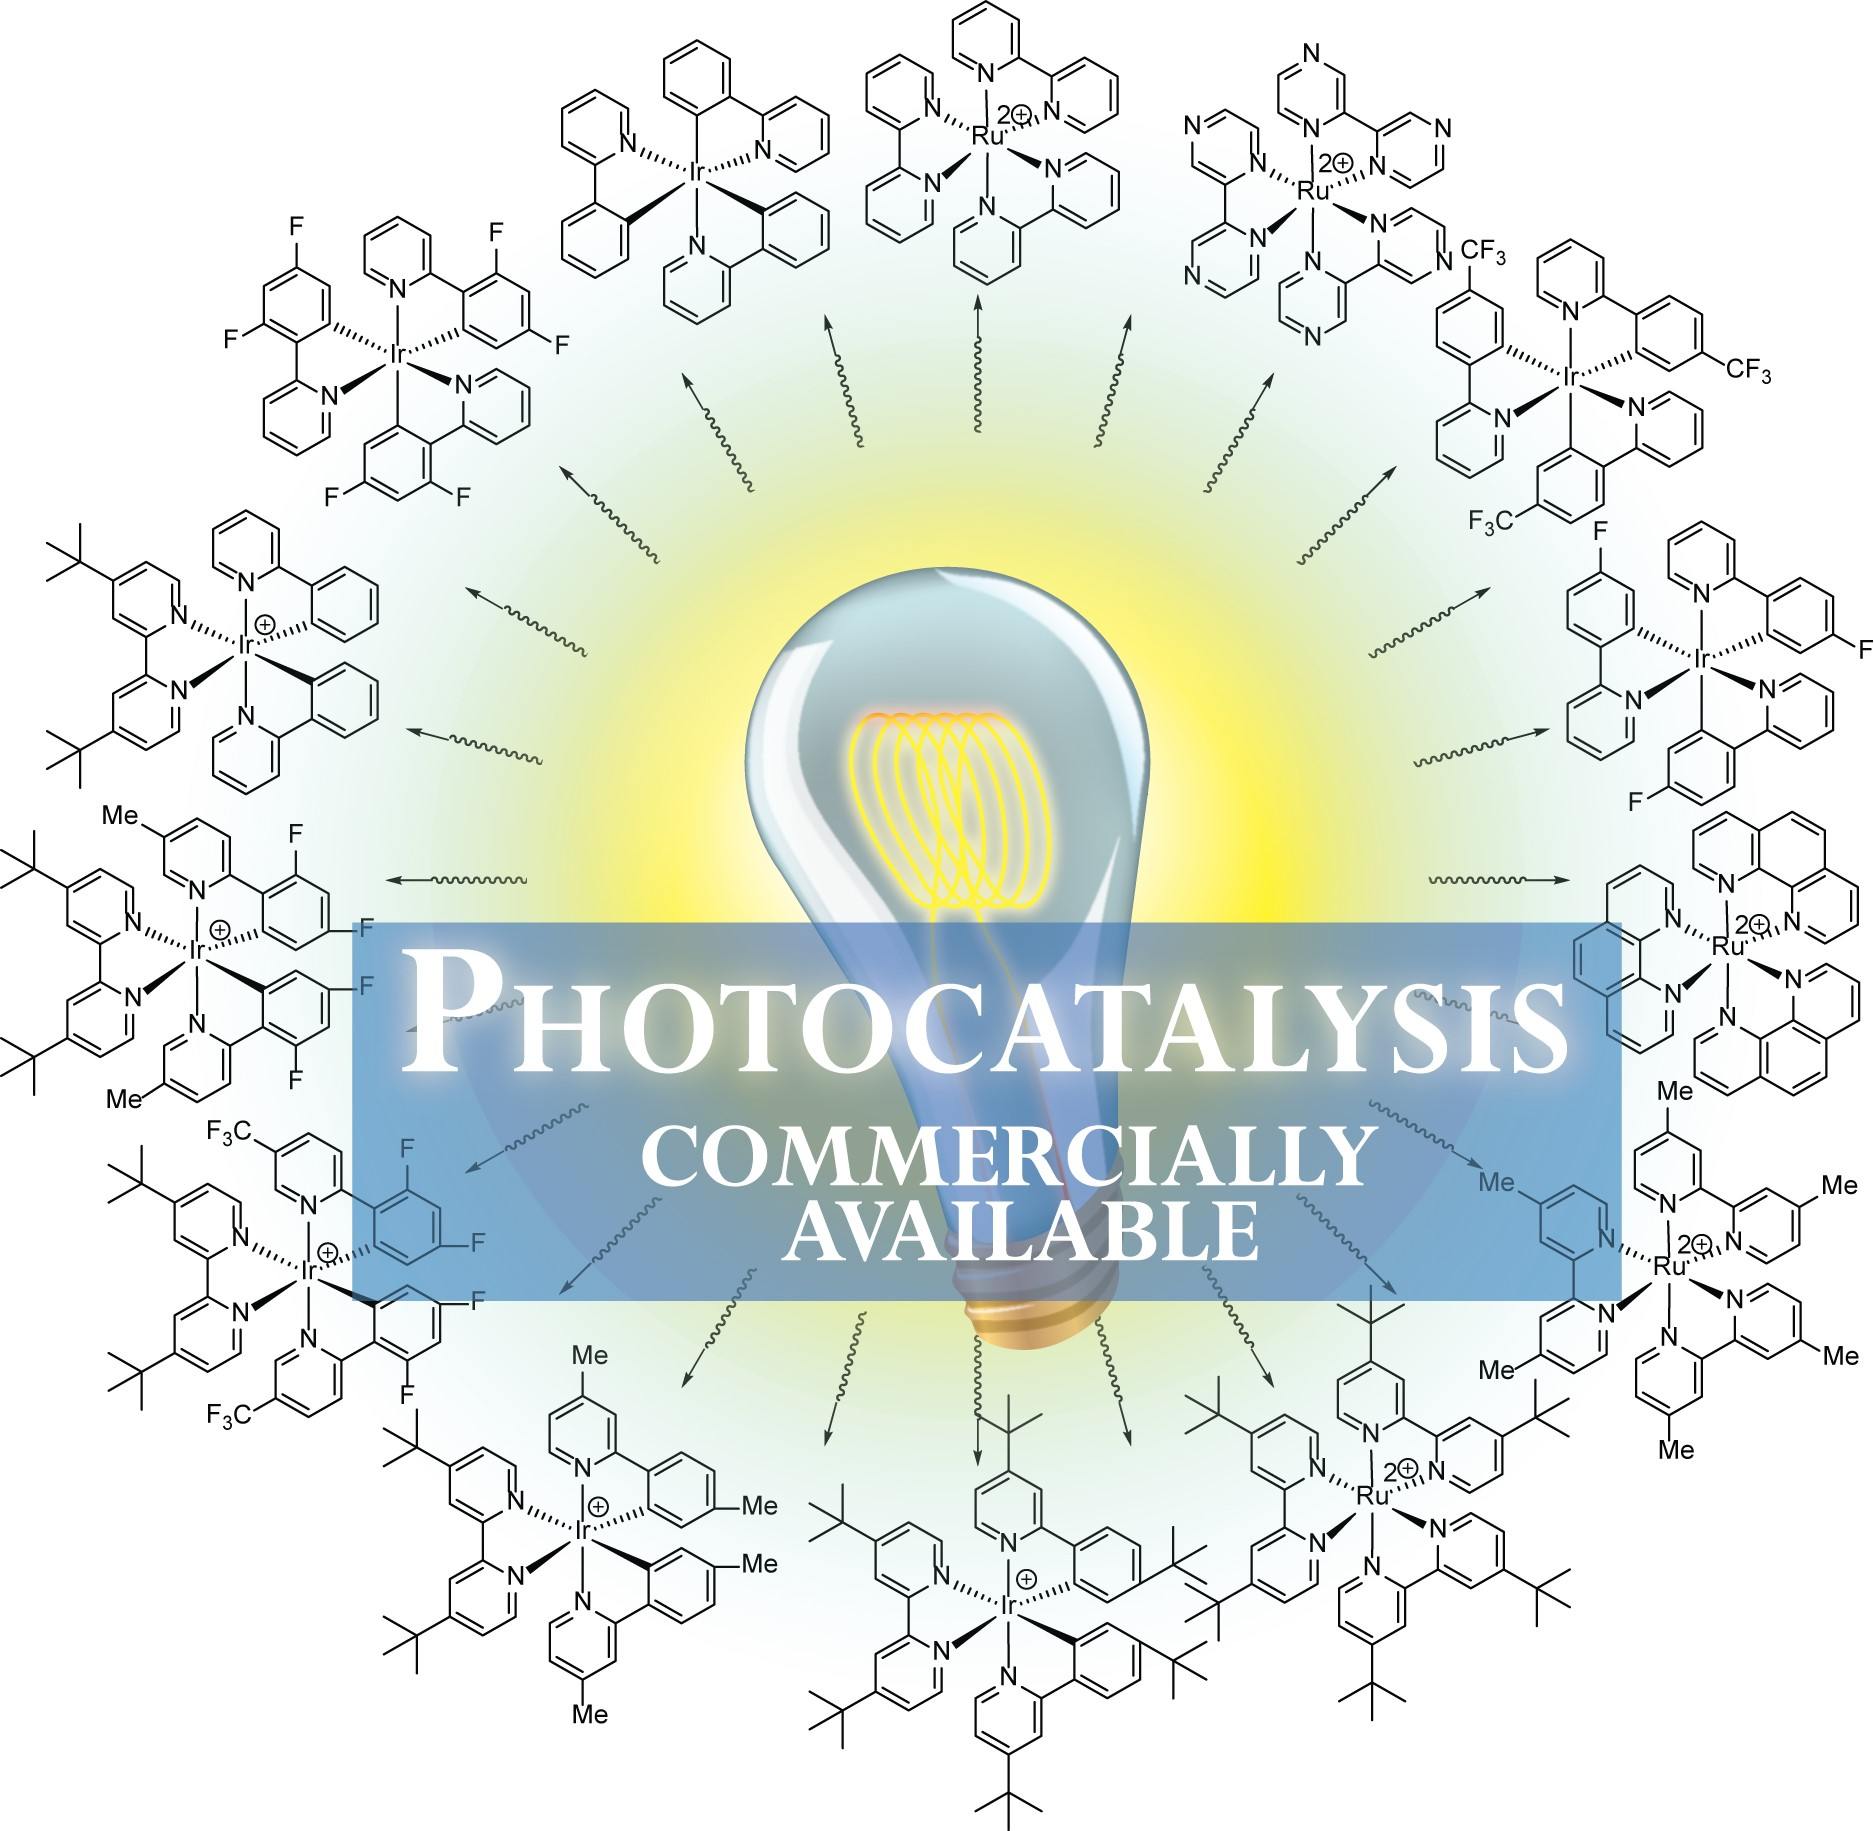 Photocatalysts commercially available